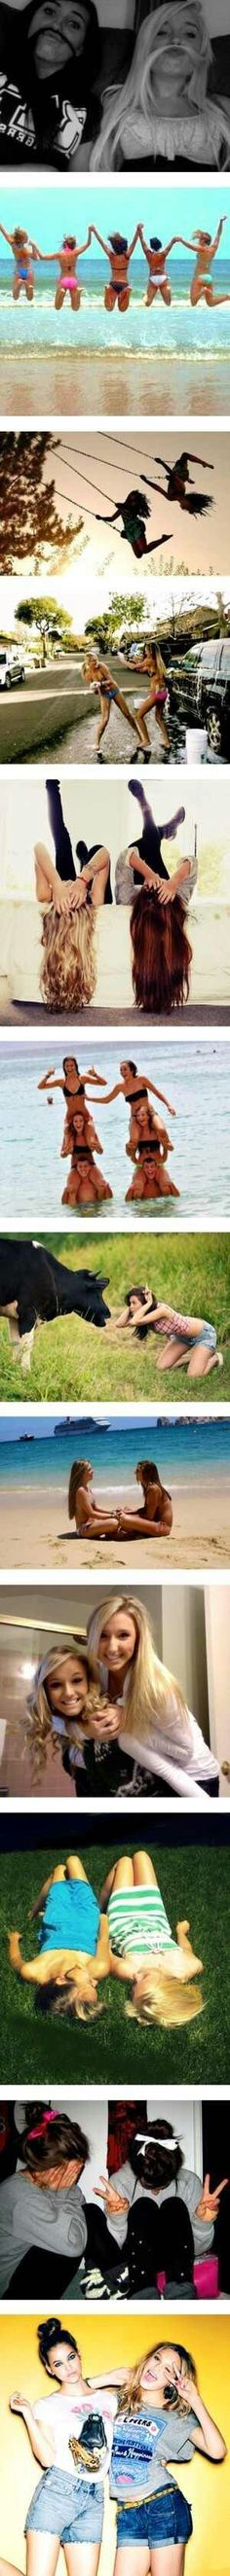 Best friend poses except with three peopl